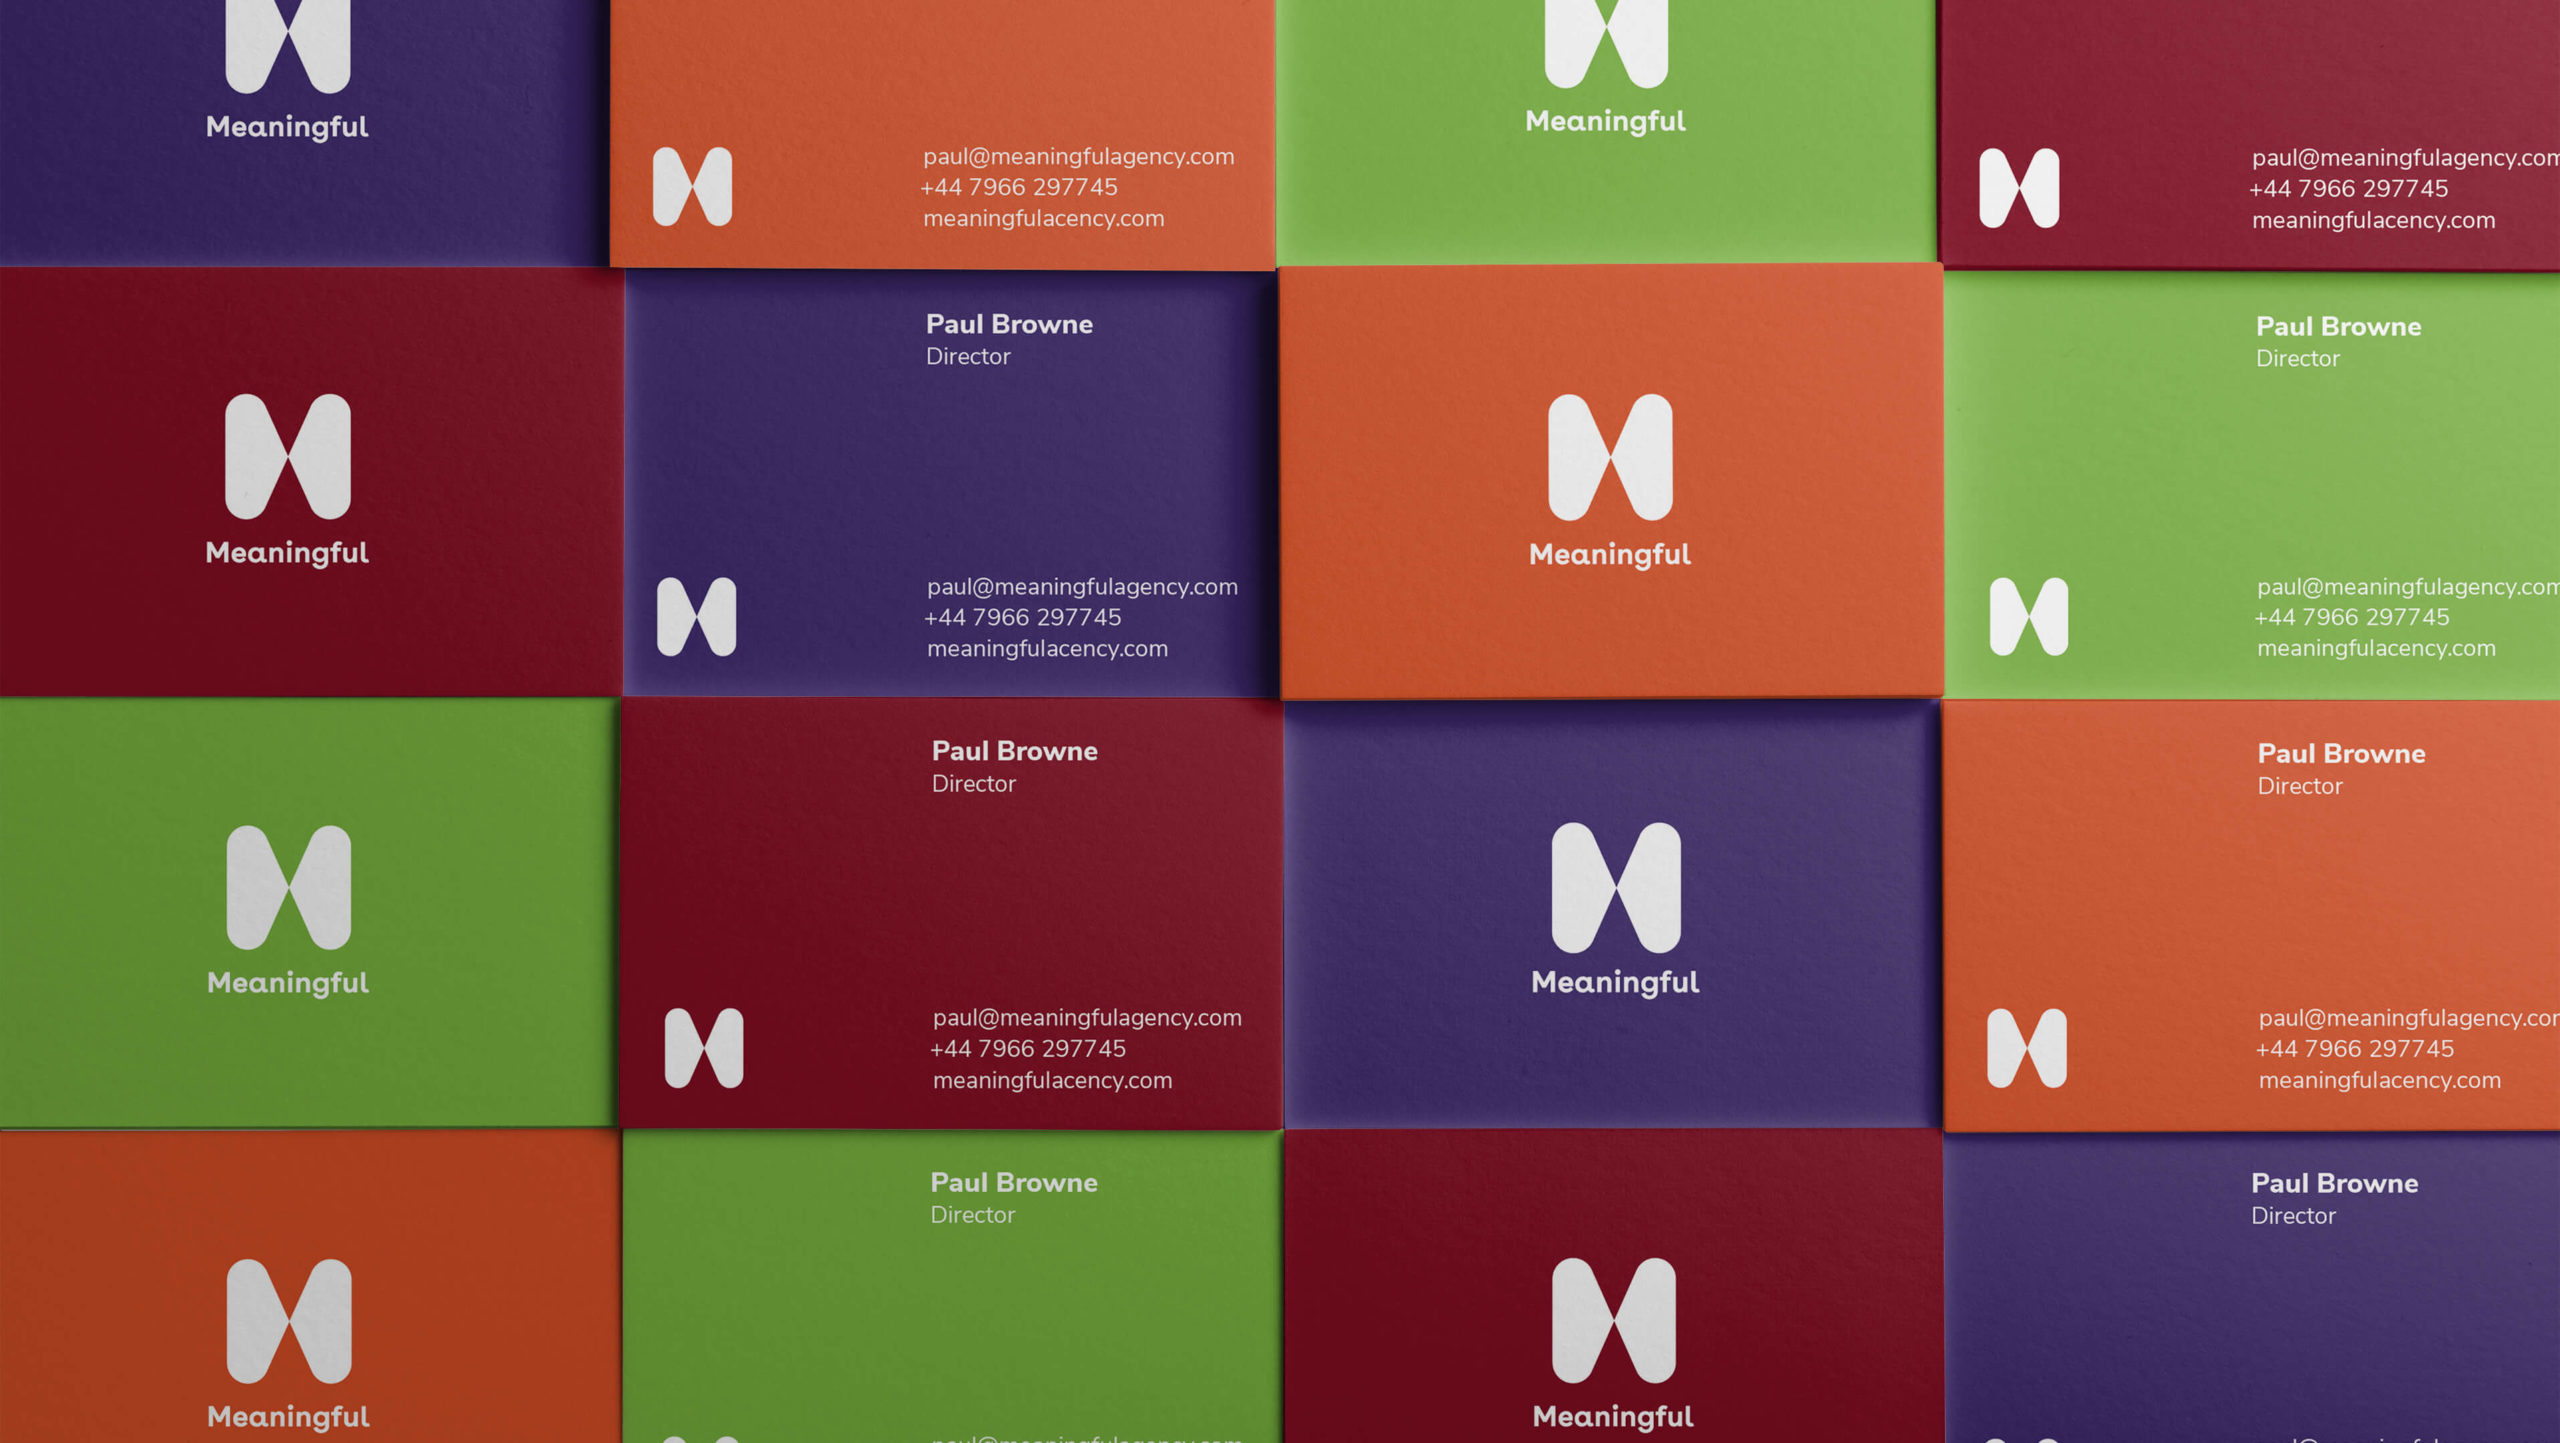 Meaningful_business-cards